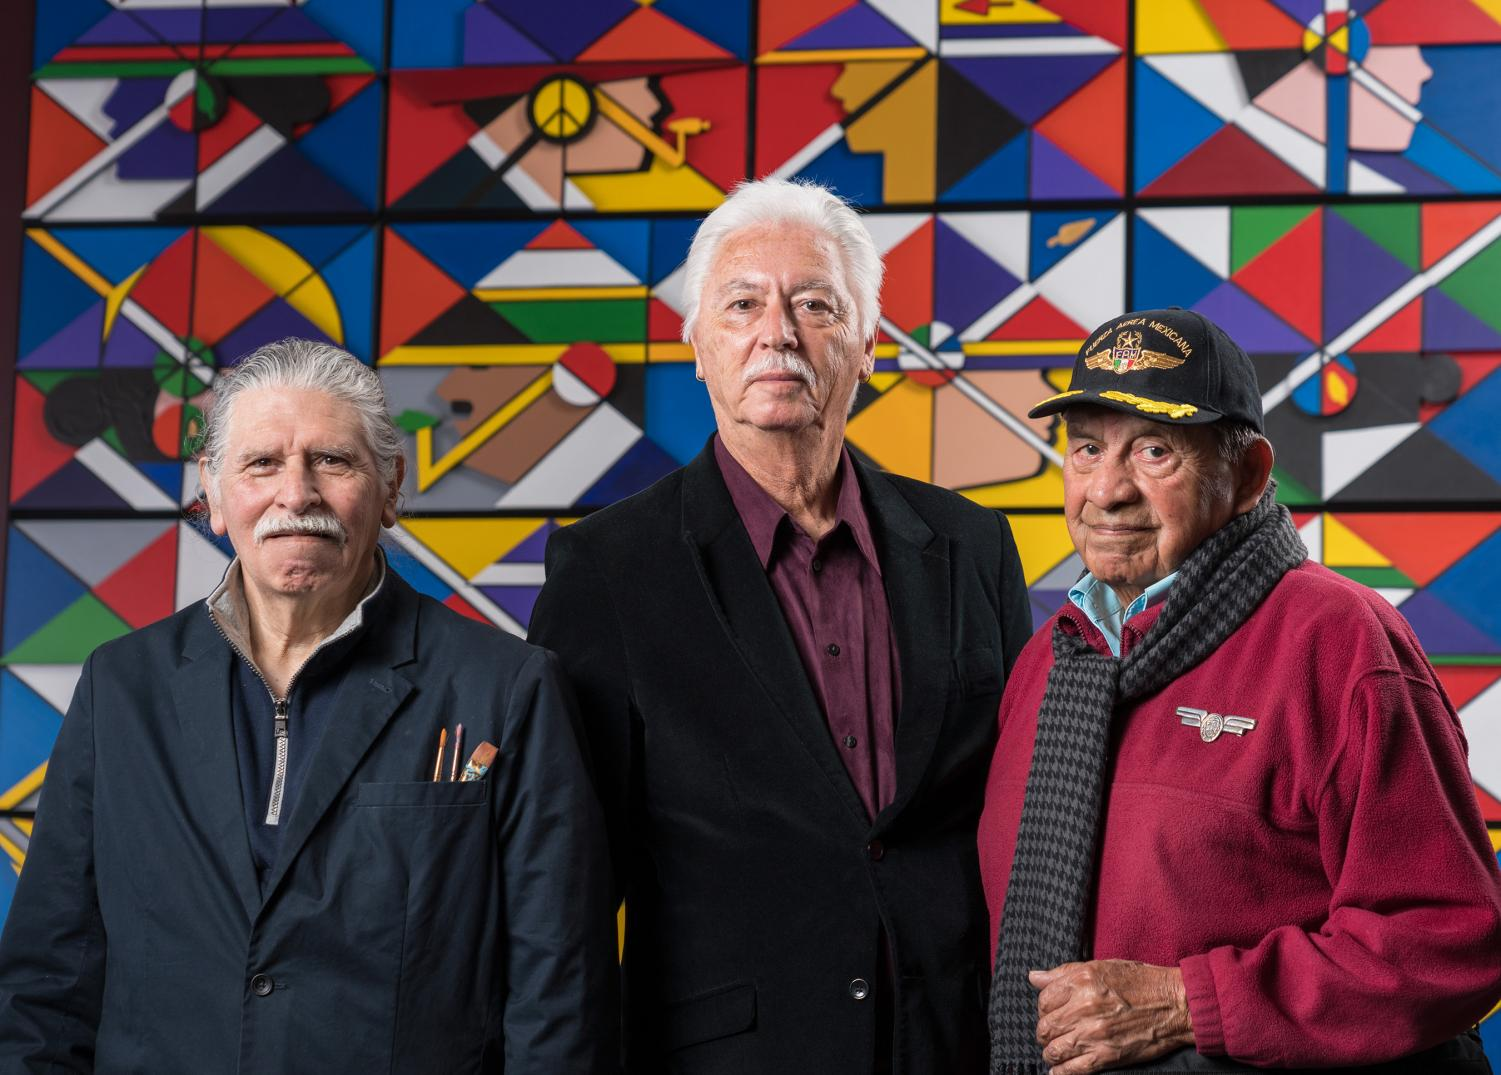 RCAF members Juanishi Orosco, left, Stan Padilla, and Esteban Villa pose in front of the lower panel of their mural.